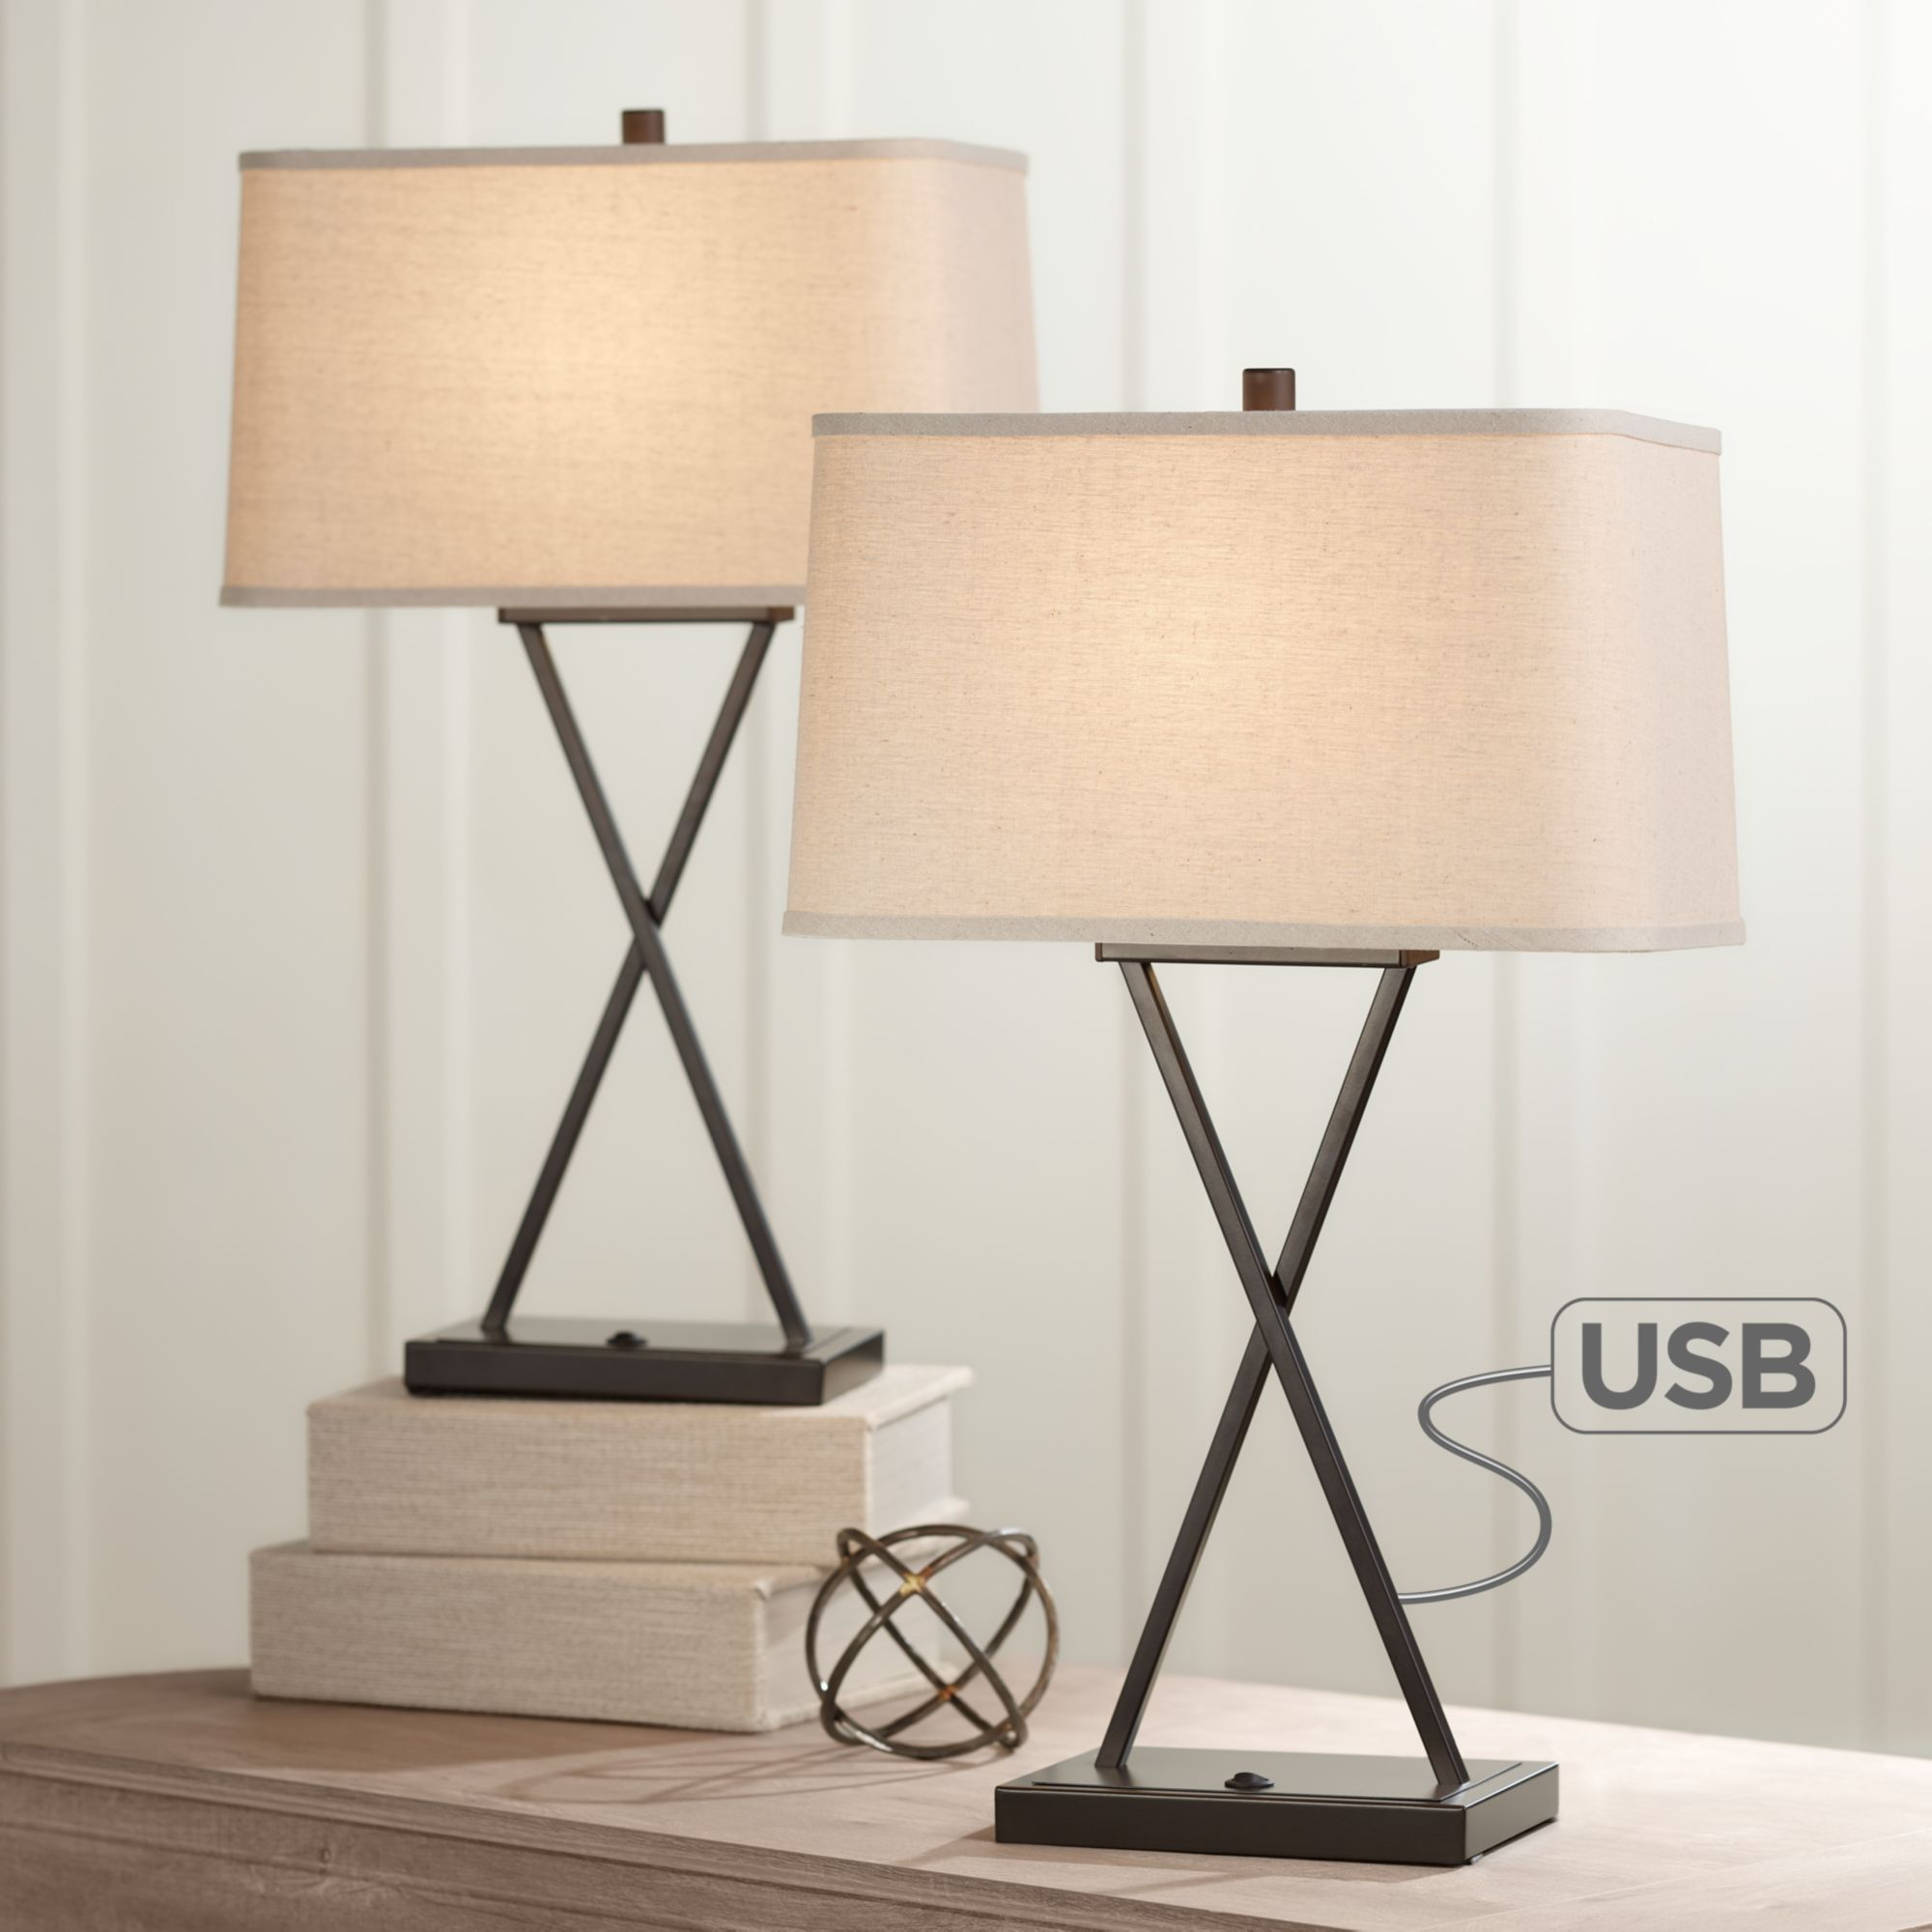 360 Lighting Modern Table Lamps Set Of 2 With Usb Charging Port Led Bronze Metal Rectangular Fabric Shade For Living Room Bedroom